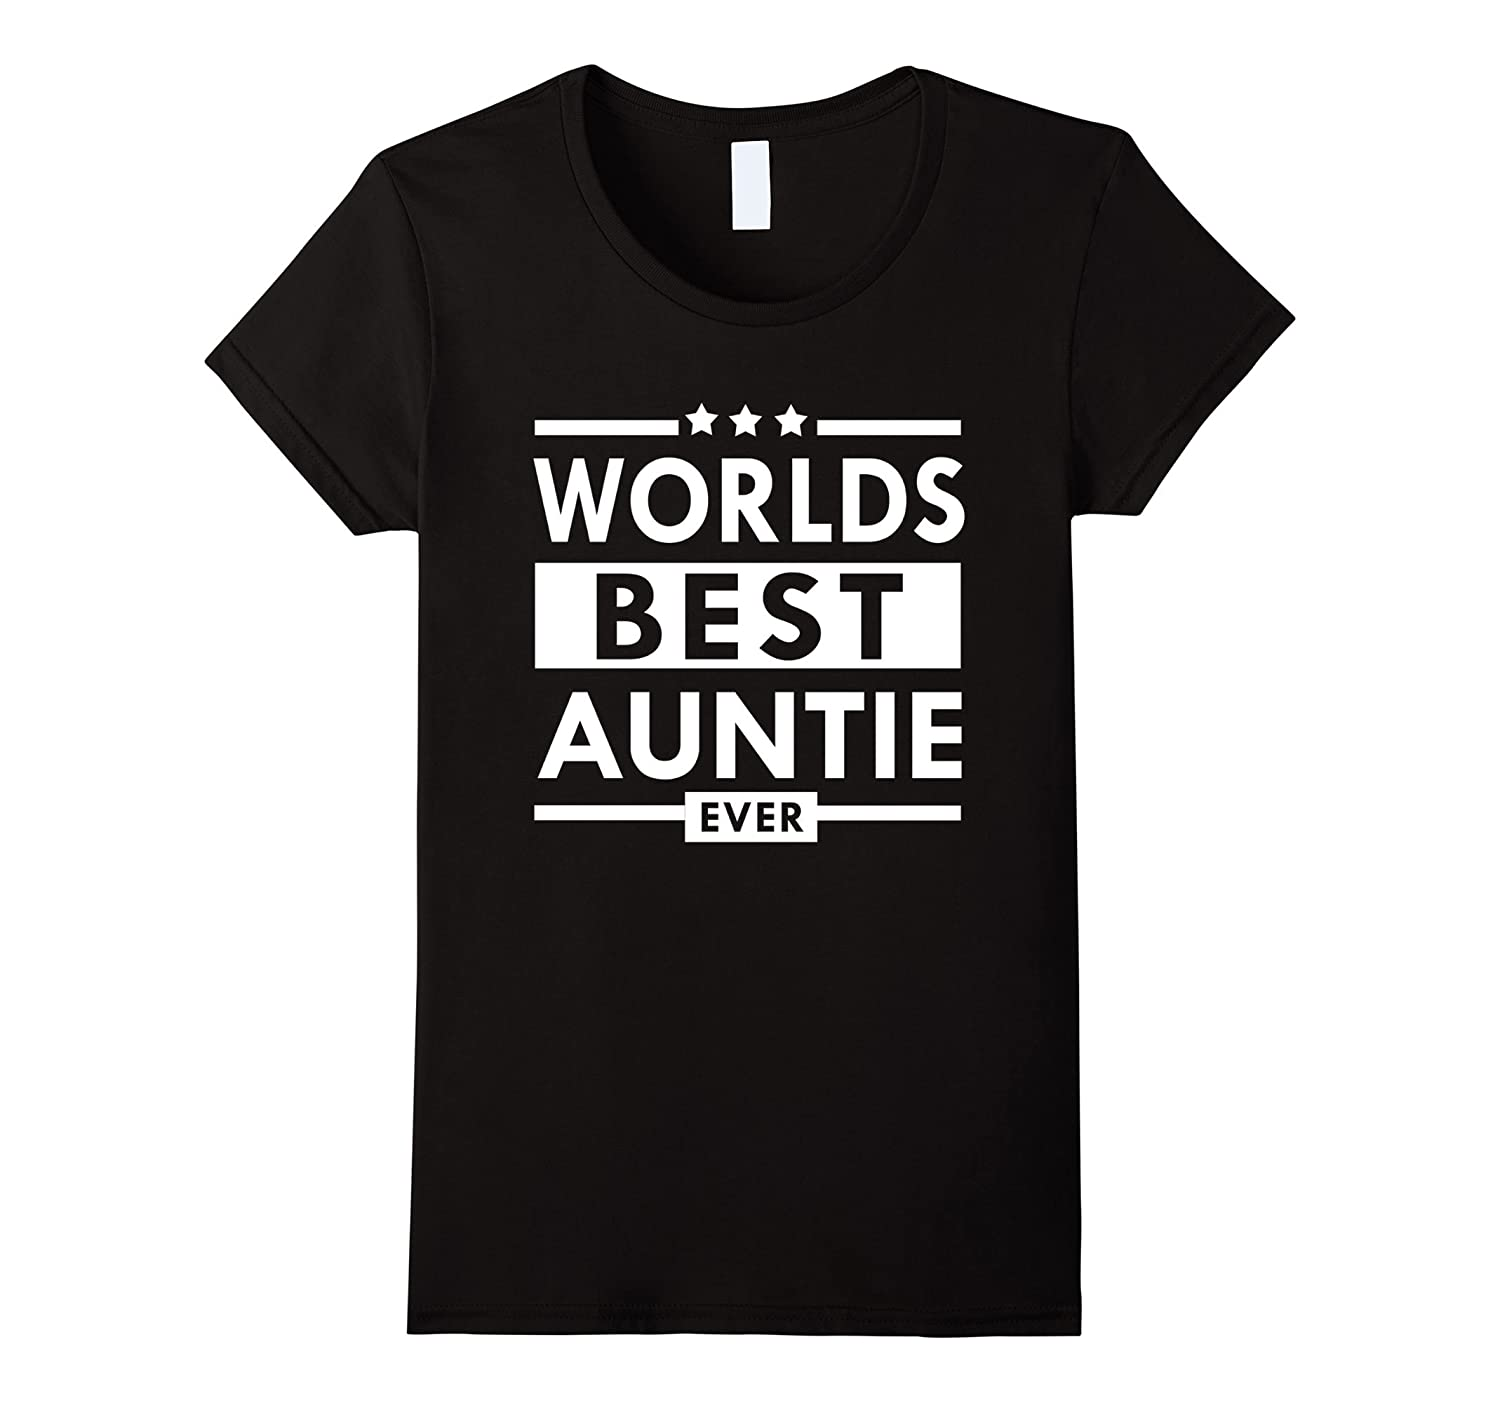 Worlds Best Auntie Ever T Shirt Family Gift for Aunt Women-Art